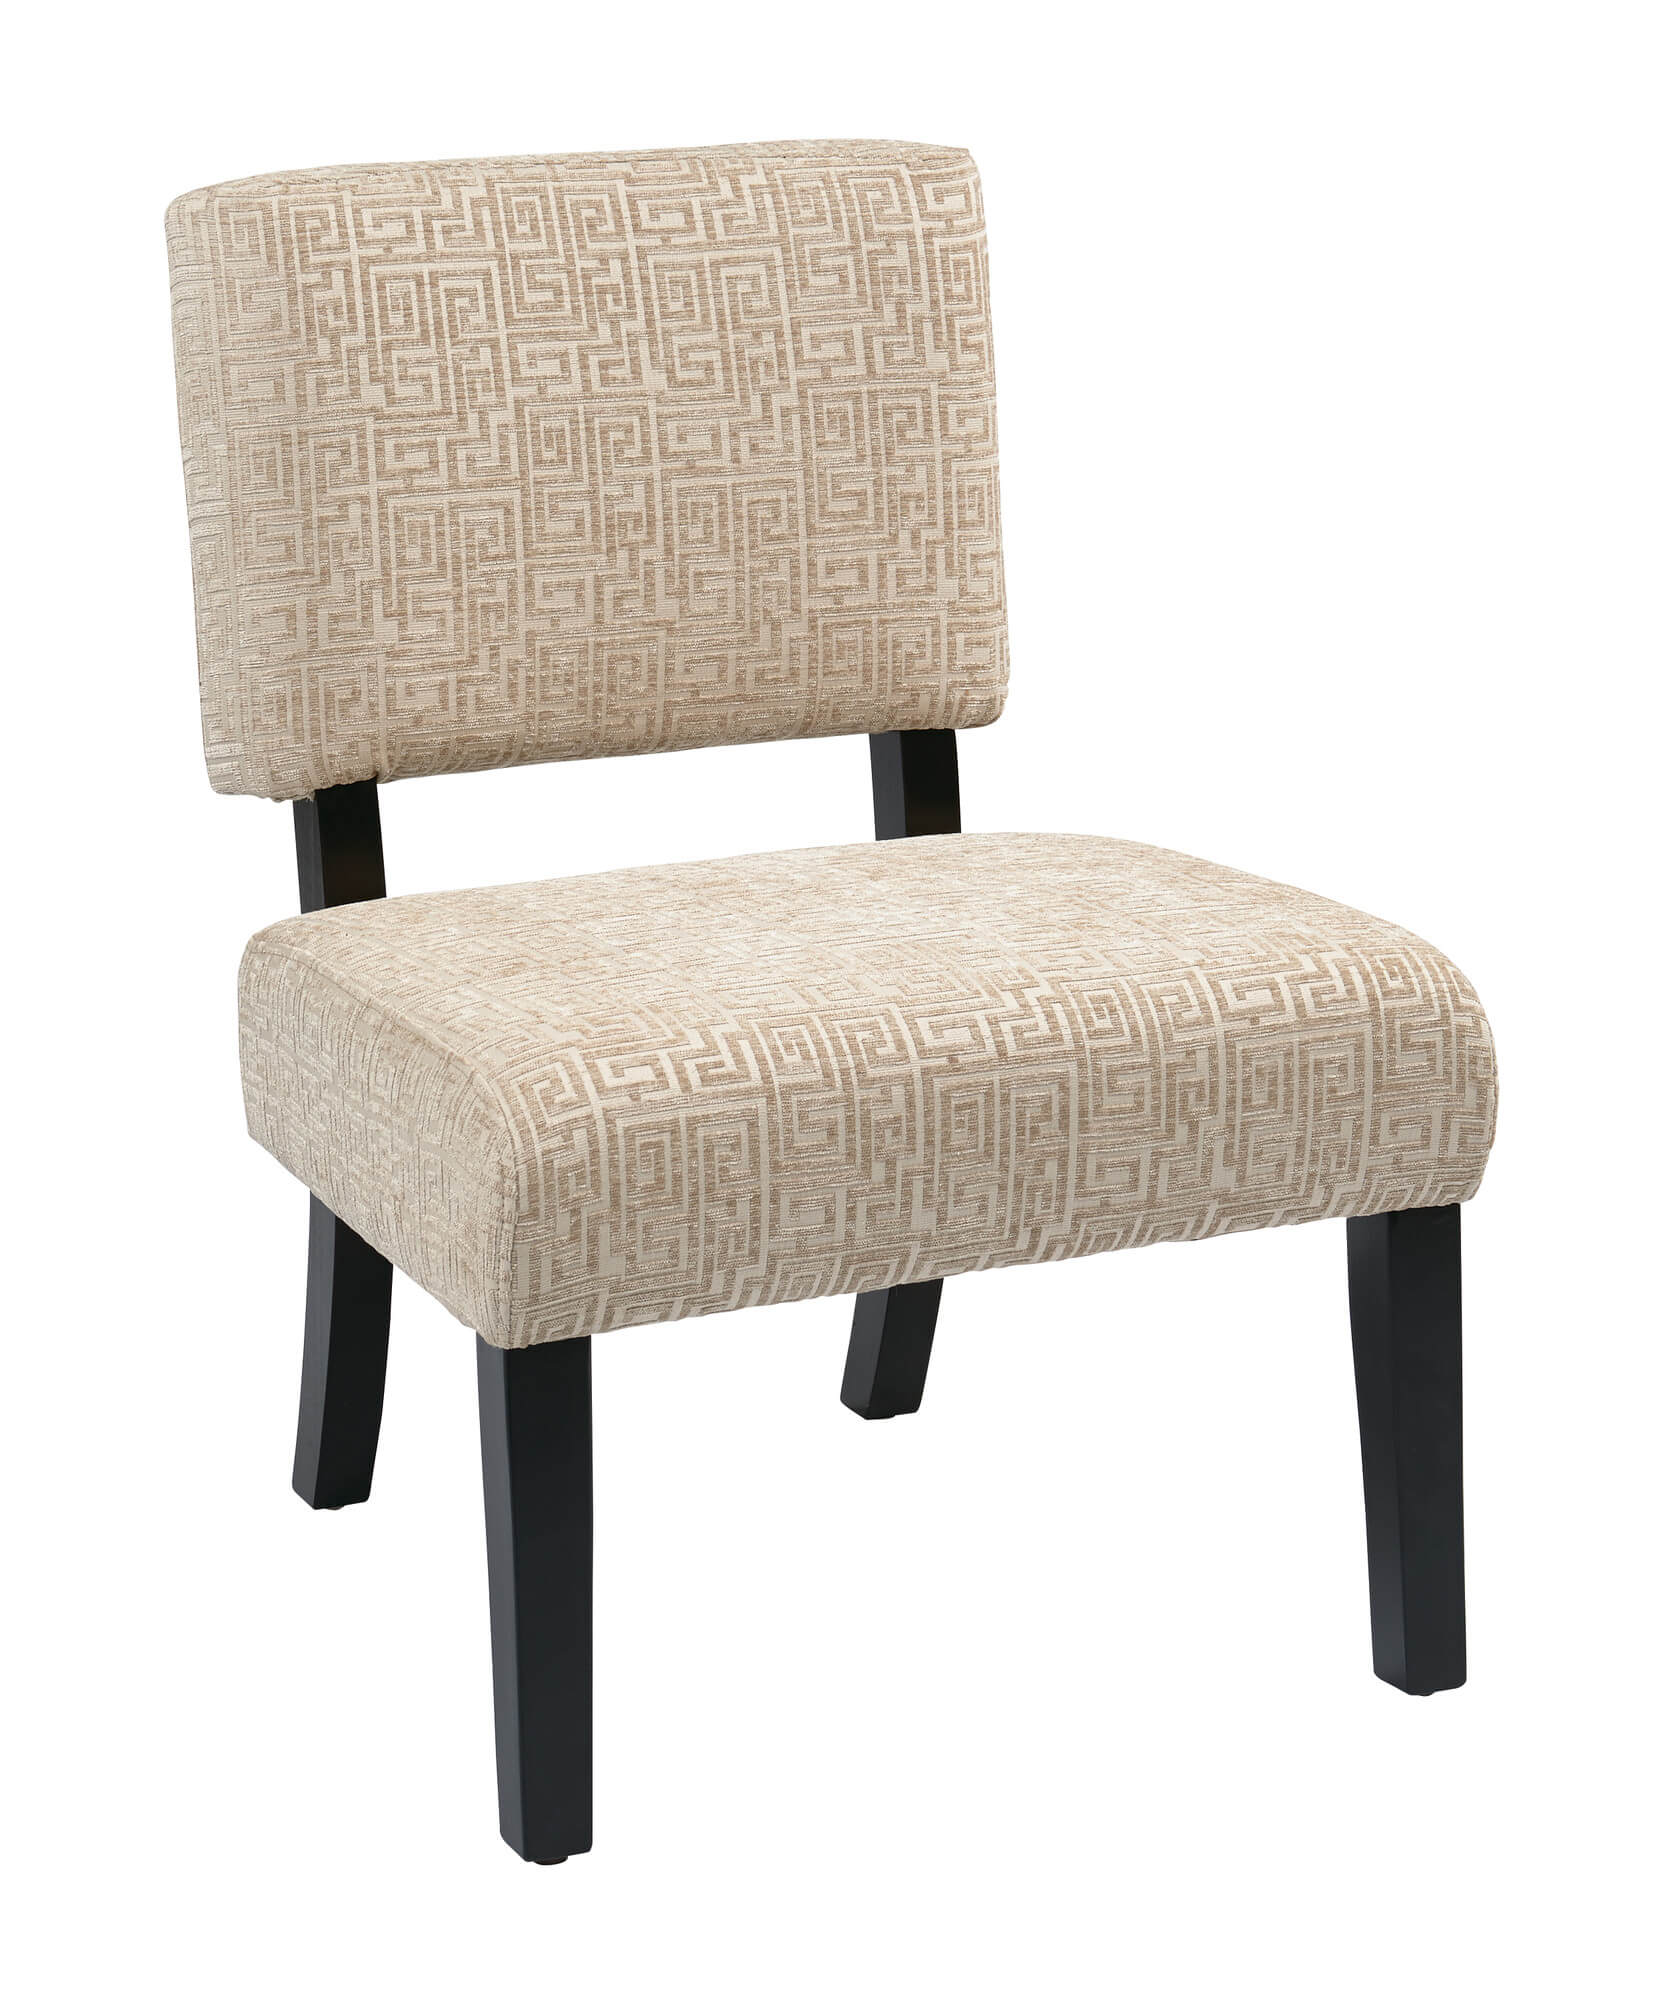 Cheap Accent Chairs Under 100 18 Attractive Accent Chairs Under 100